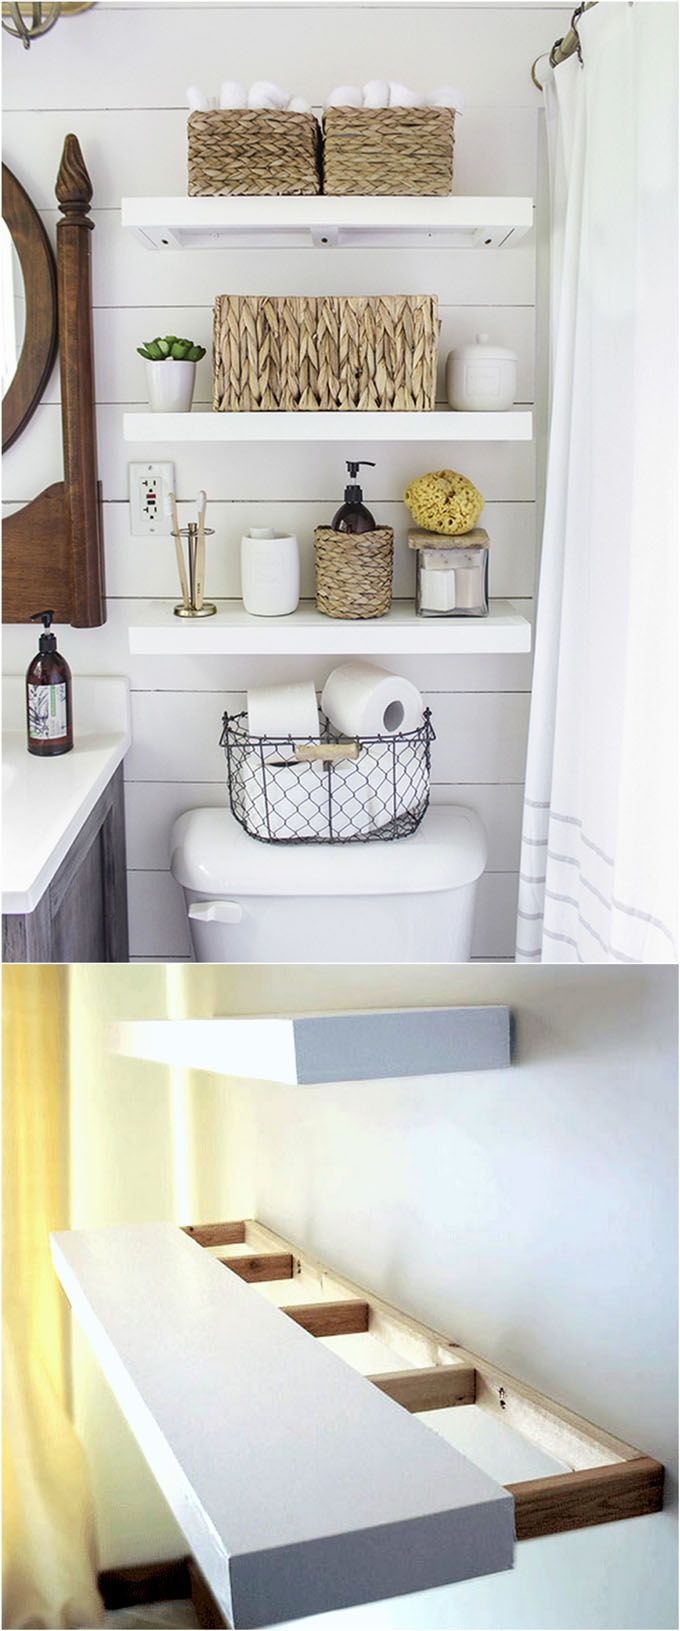 Best 20 floating shelves bathroom ideas on pinterest - Floating shelf ideas for bathroom ...